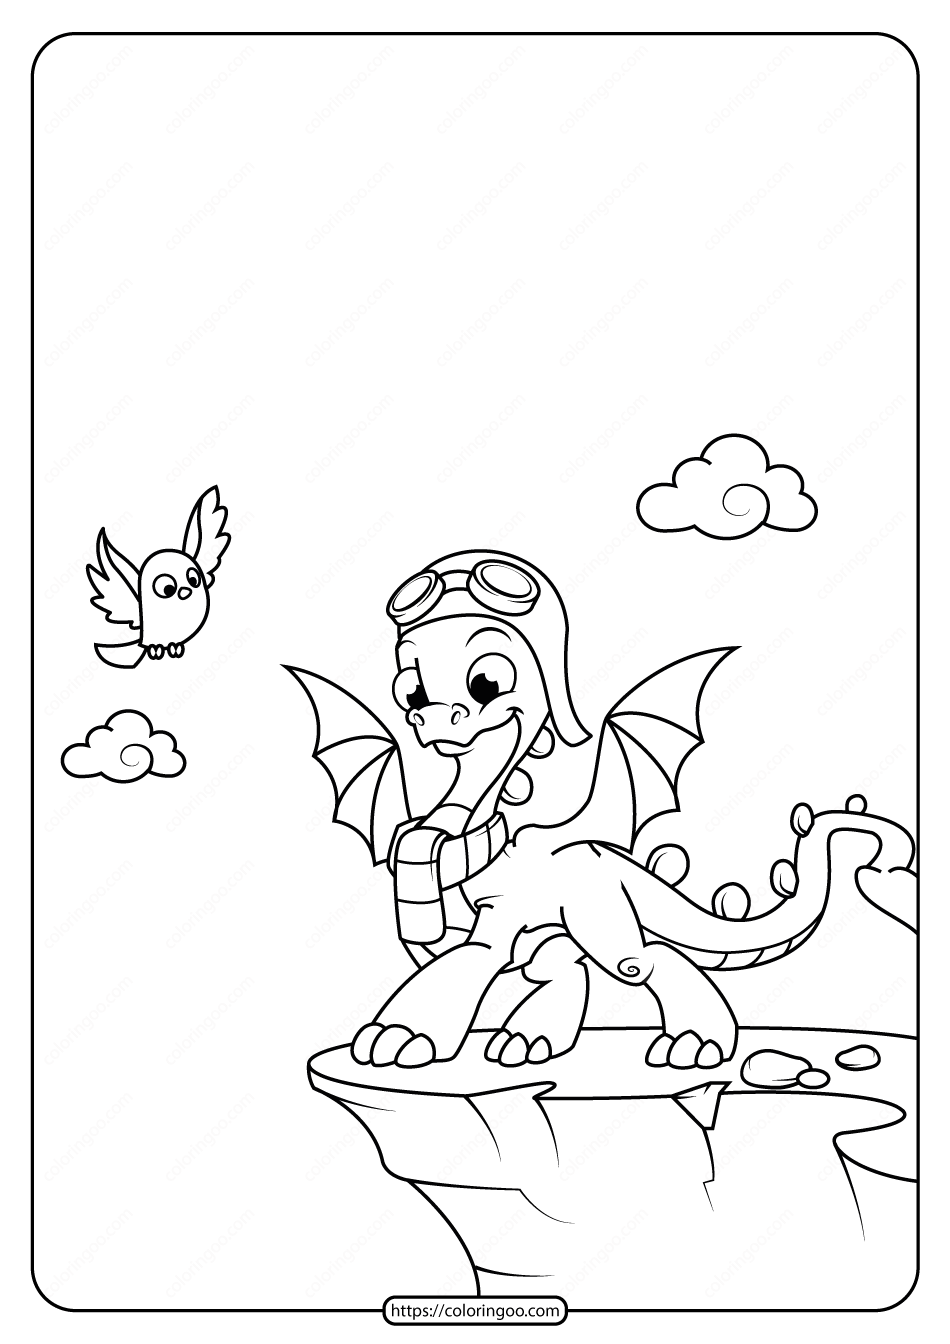 Free Printable Animals Dinosaur Coloring Pages 21